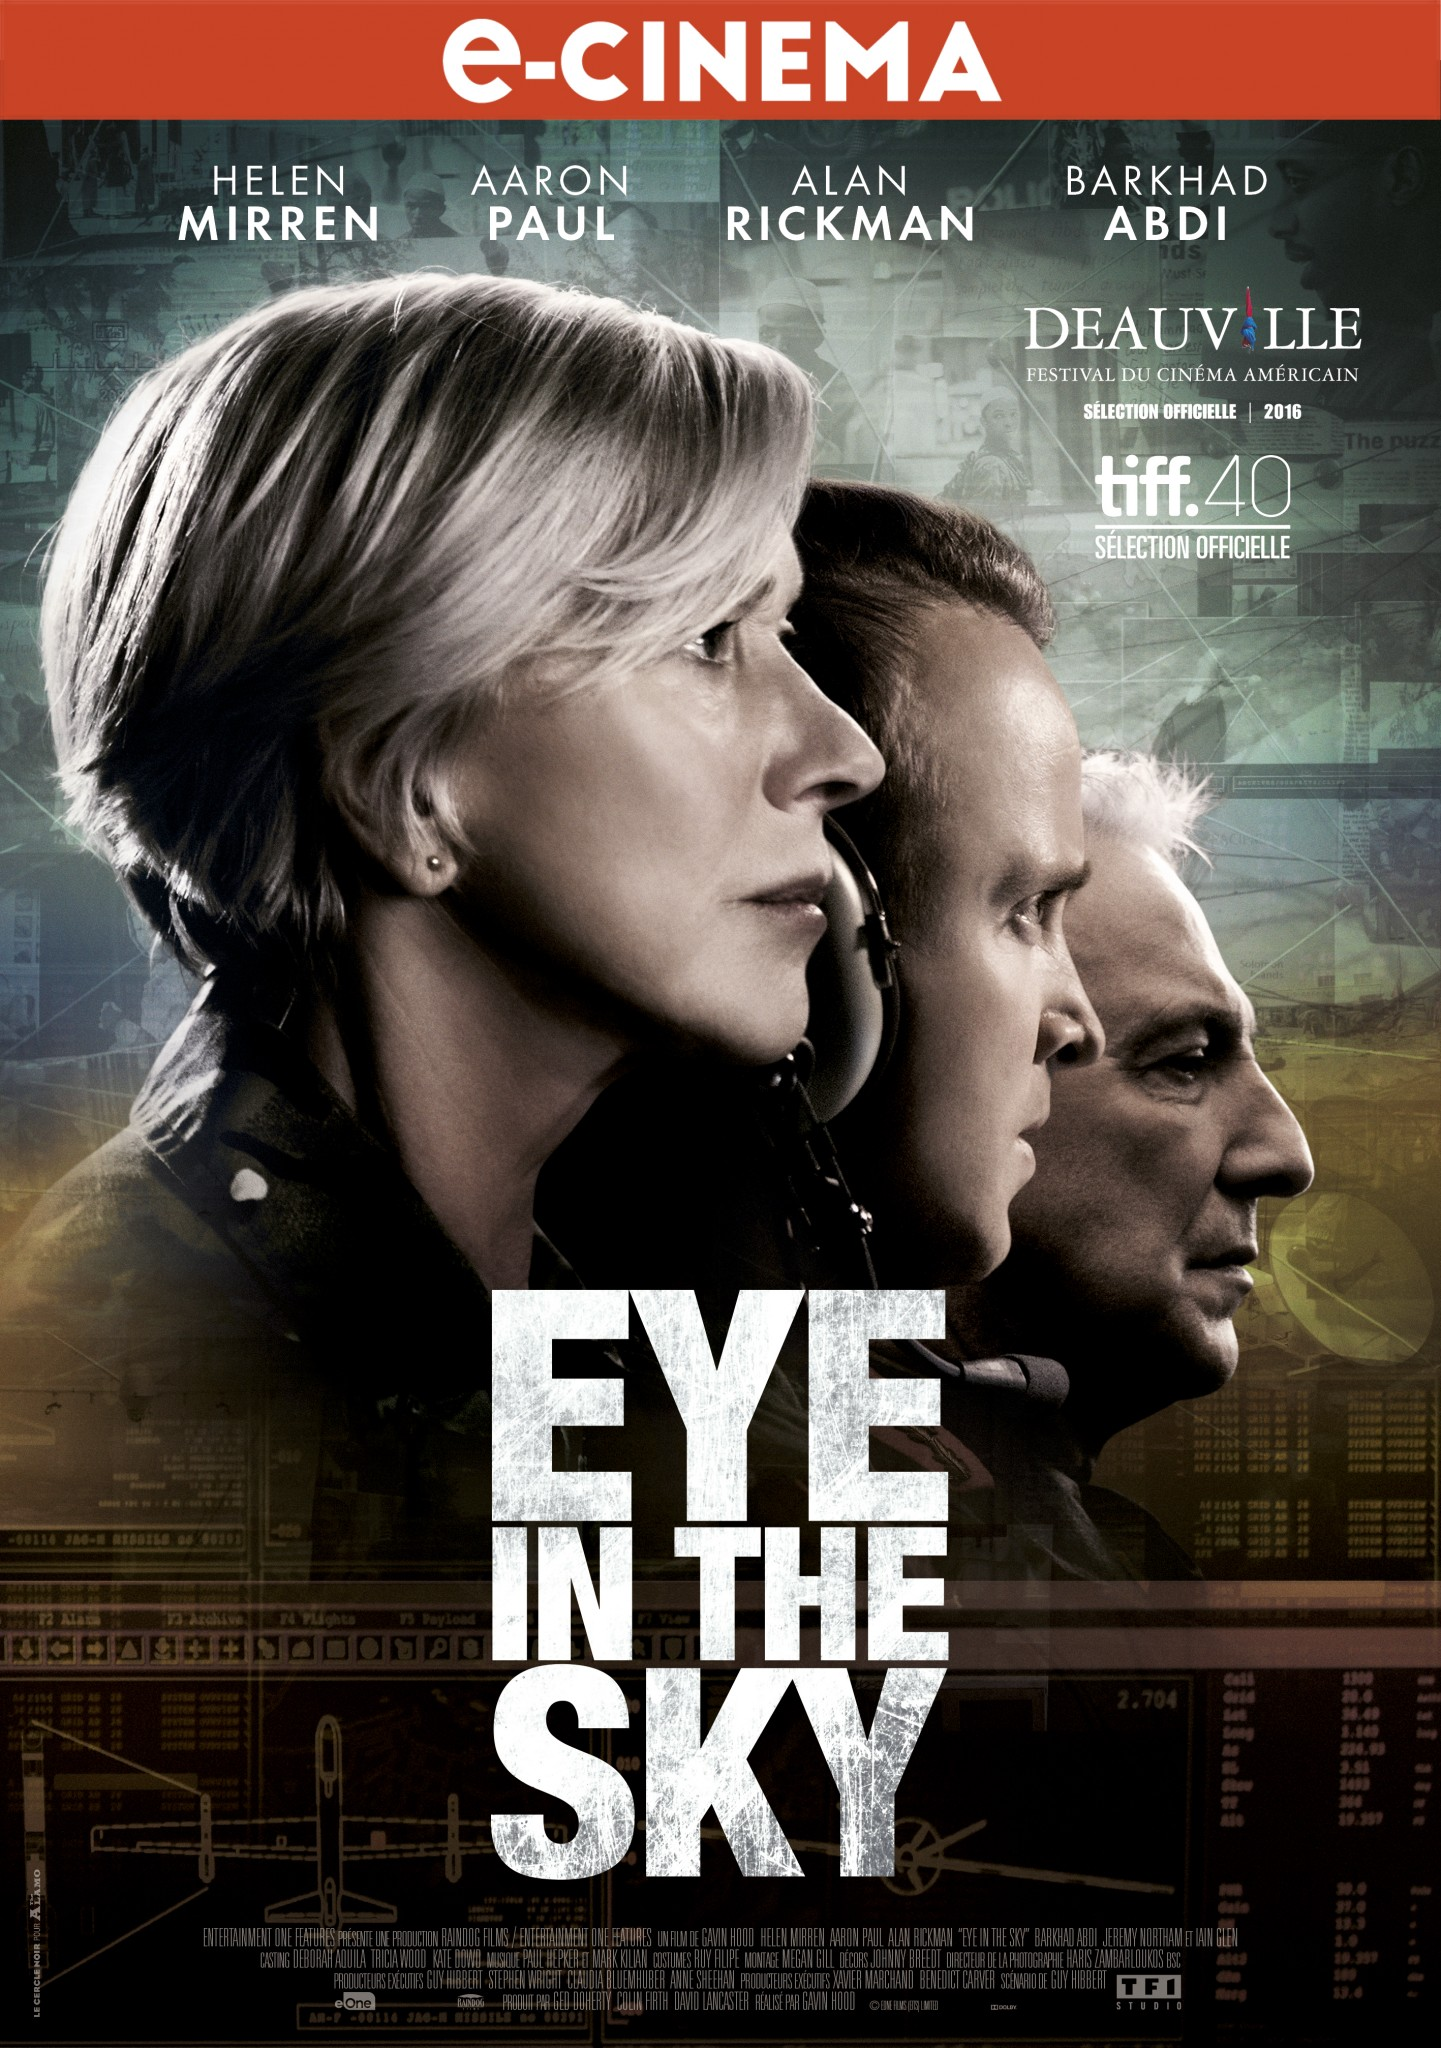 Eye in the sky affiche